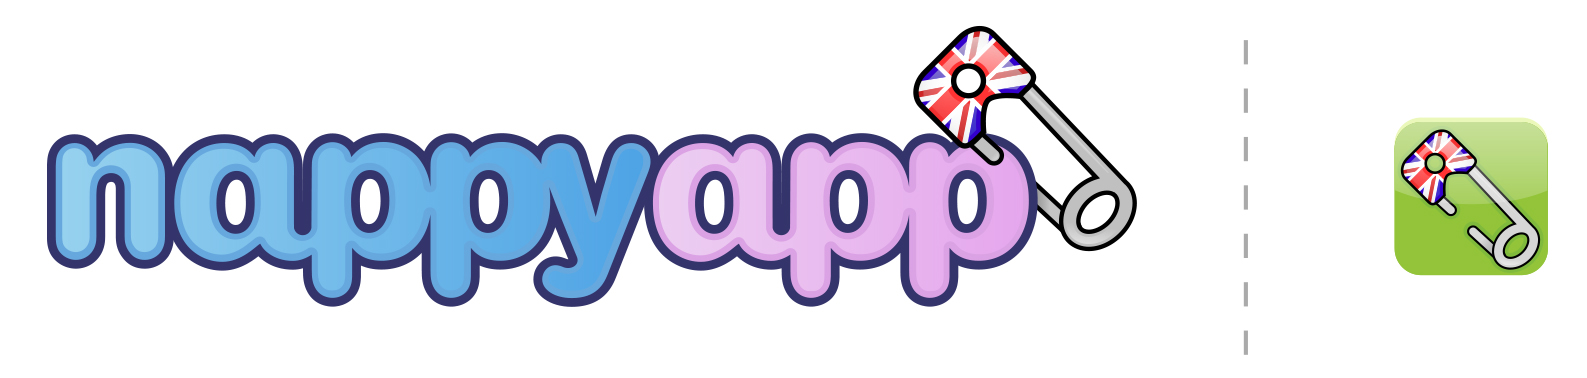 nappyapp, mobile technology, app, iphone, android, icon